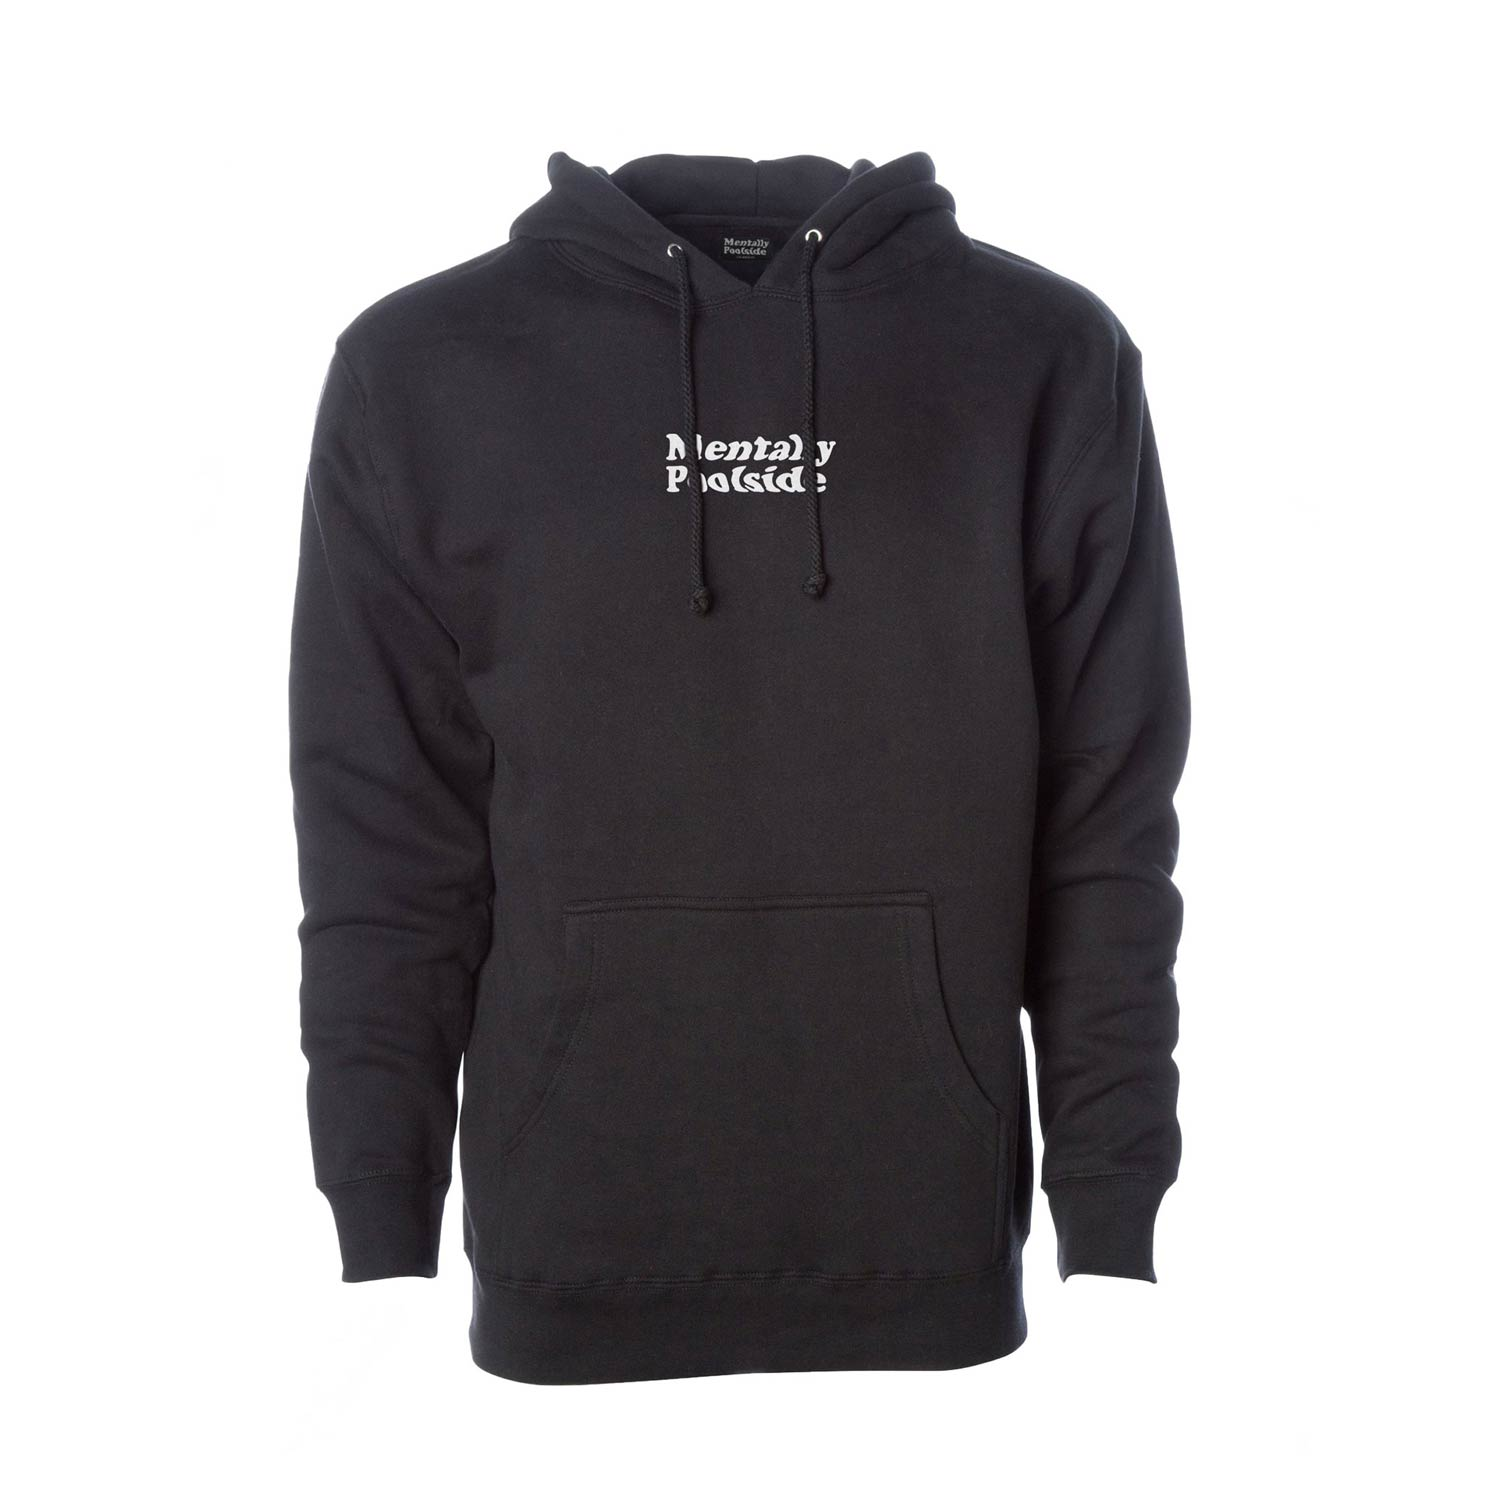 Mentally Poolside OG Heavy Weight Pullover Hoodie